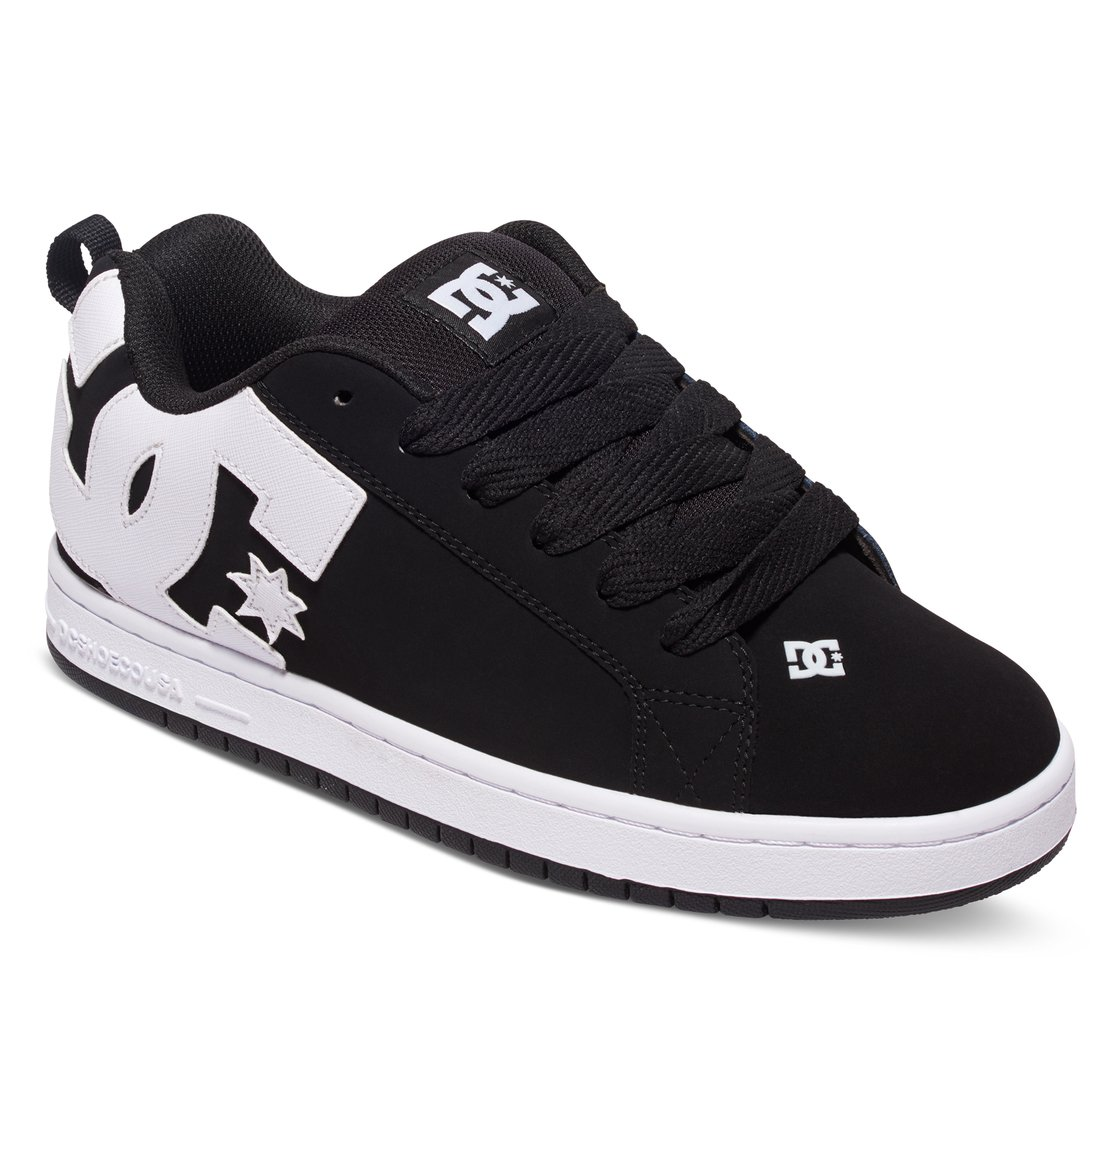 DC have been a leader in skate shoes and apparel since , when DC was founded by Ken Block and Damon Way. DC shoes are a line of some of the most technical and deluxe skate shoes available. DC shoes are largely built out with the highest technological support for riding a skateboard, like quality lightweight cupsole construction, EVA footbeds, and the right amount of protection to protect.